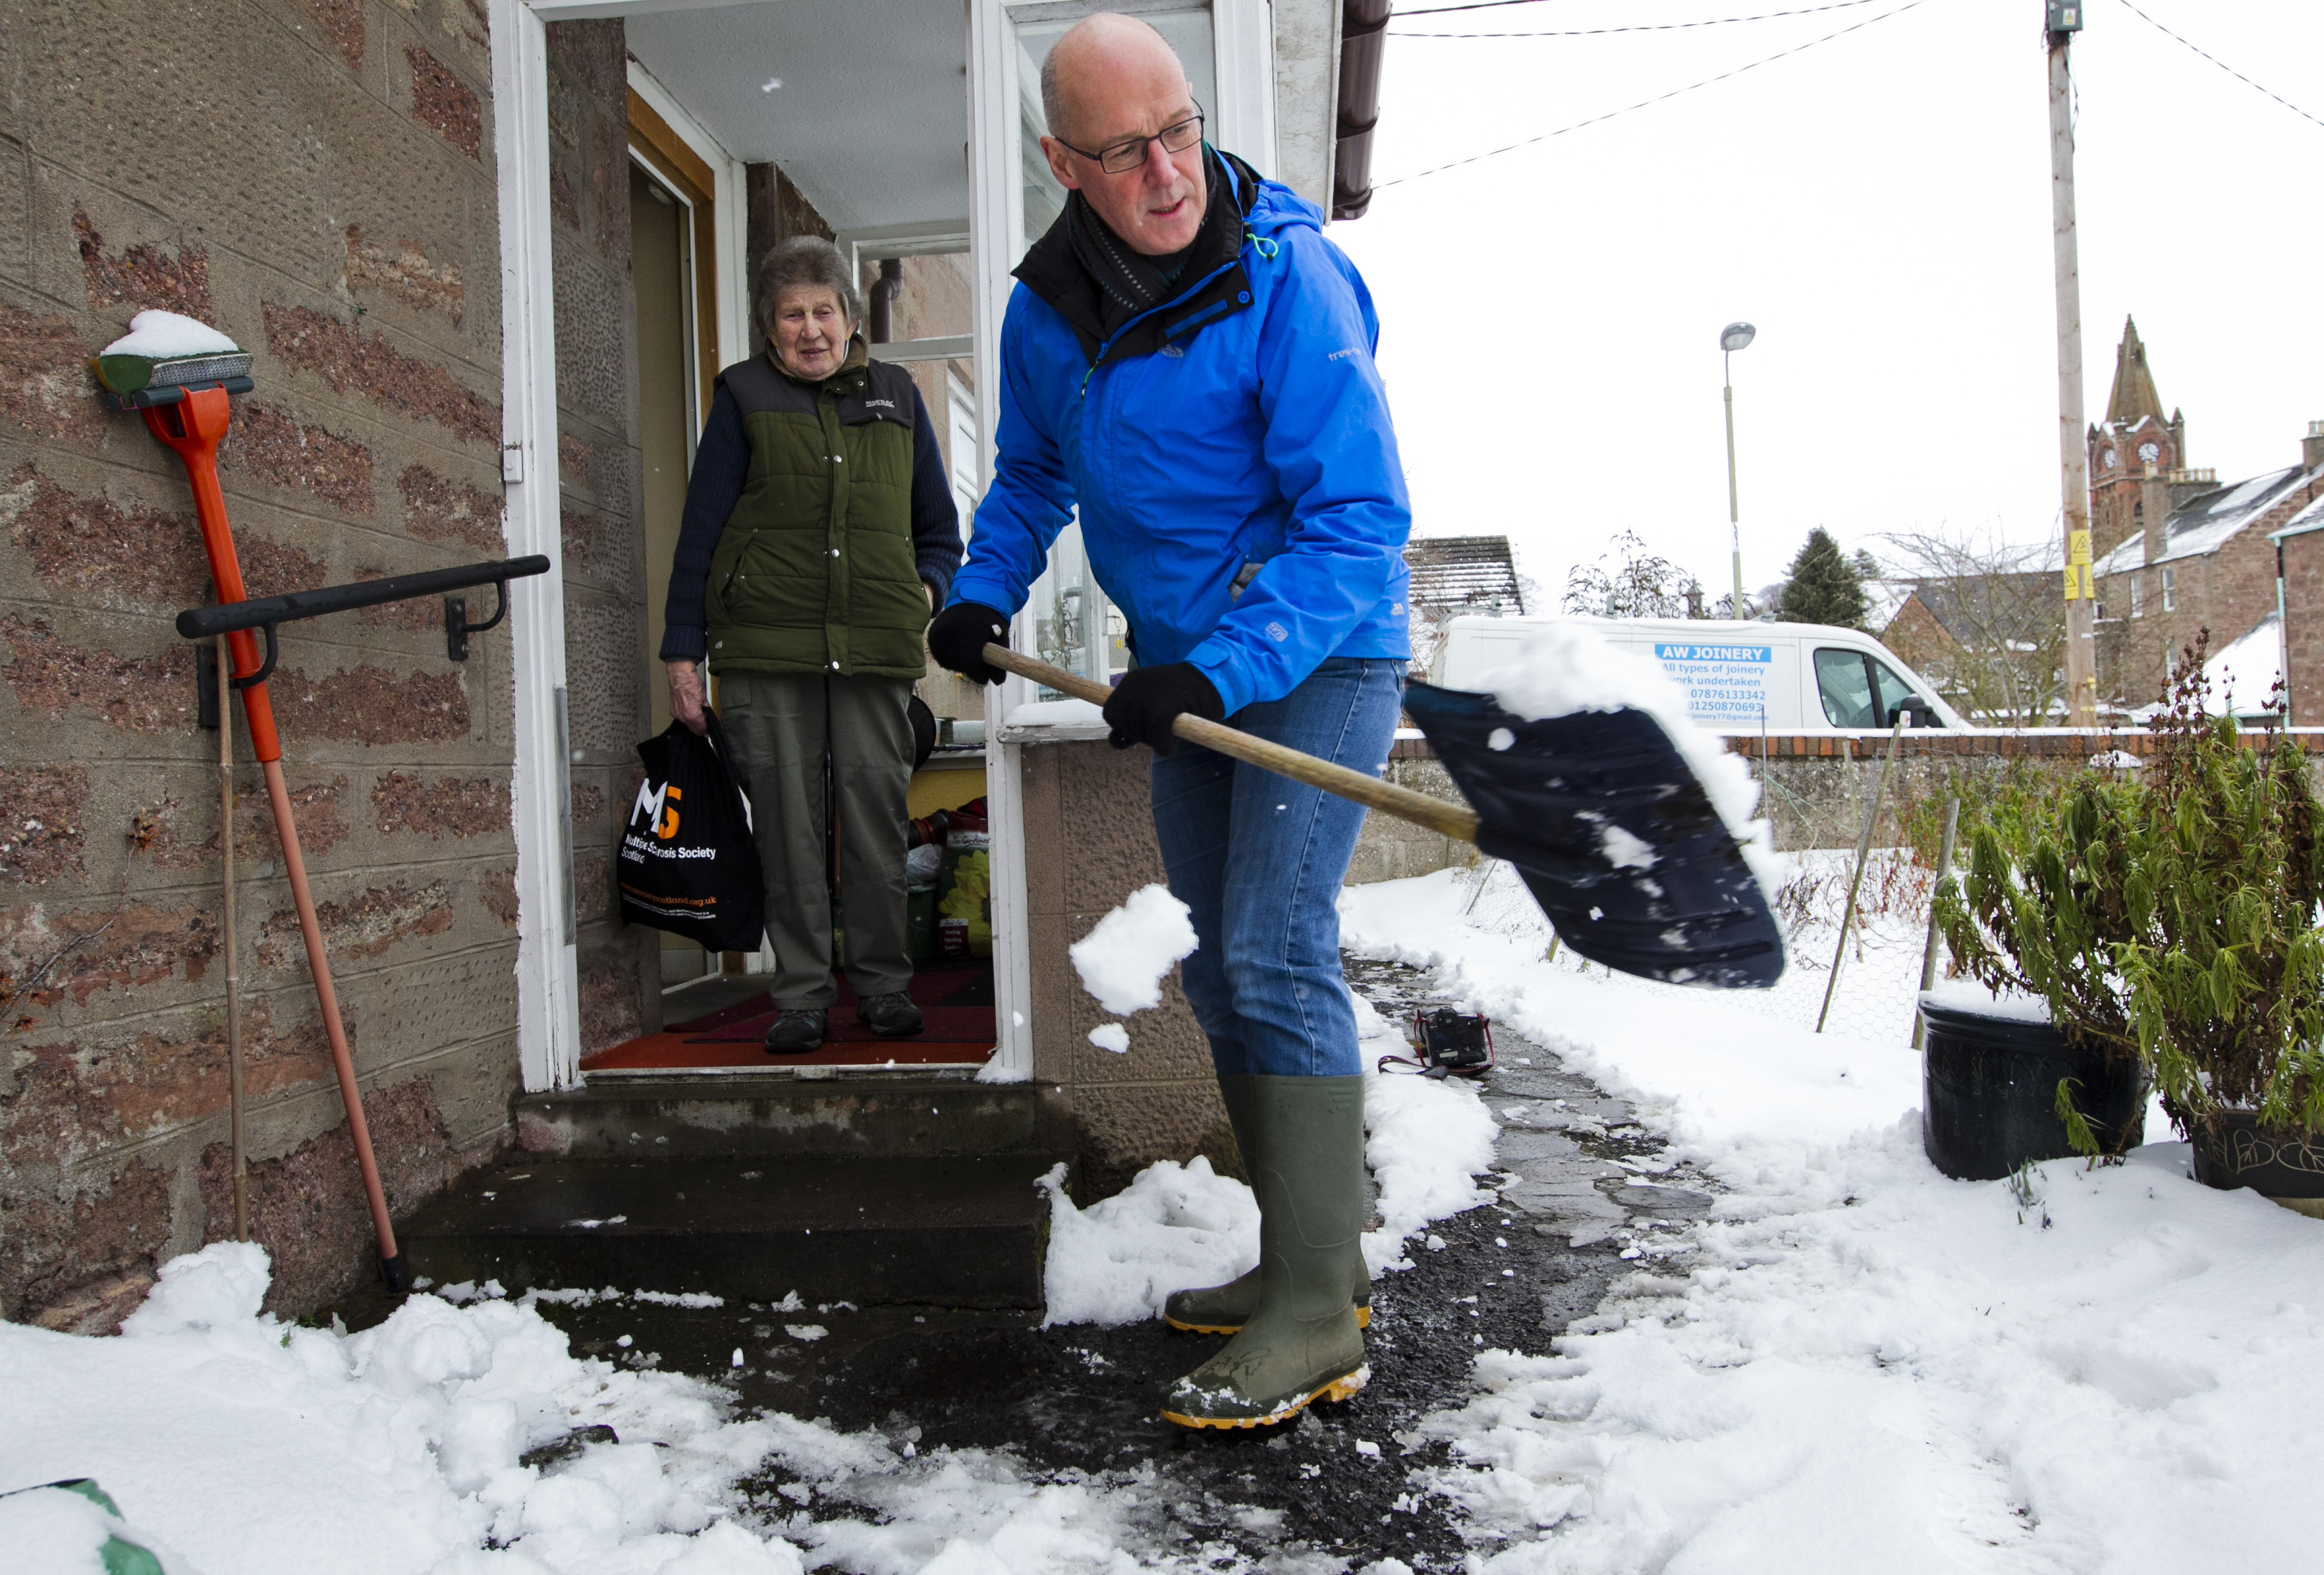 Deputy First Minister John Swinney clears the snow from Margaret Lindsay's path in Blairgowrie (Andrew Cawley / DC Thomson)